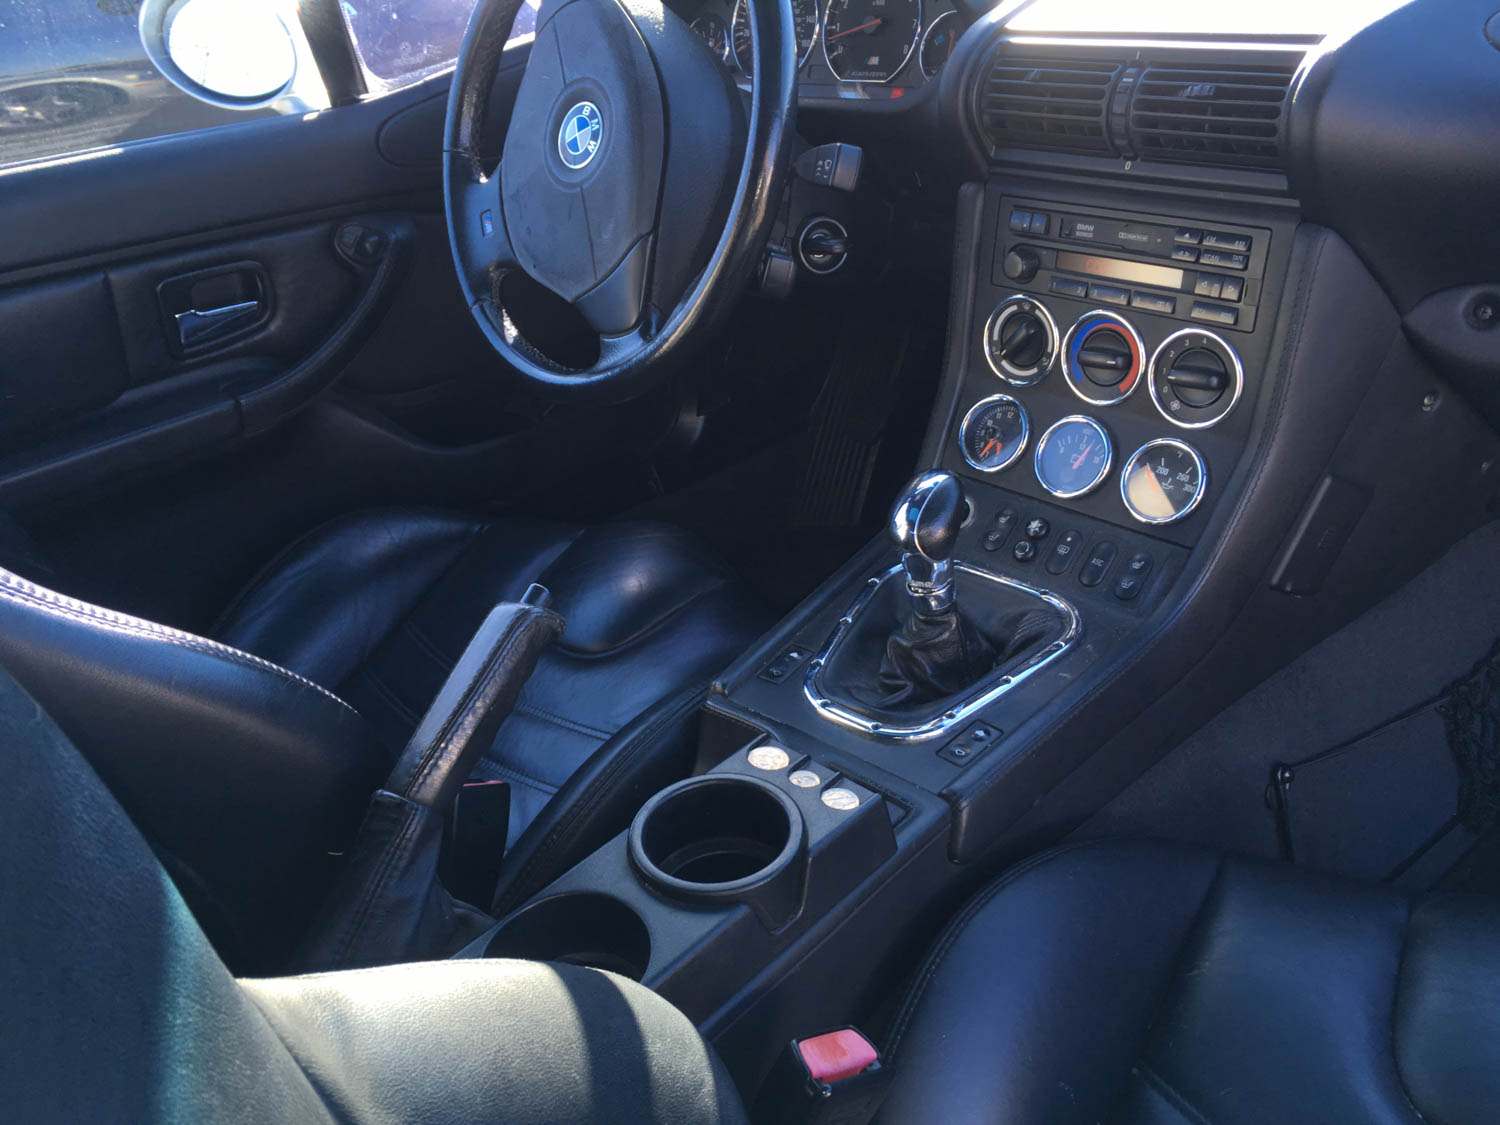 The chrome trim rings make the interior look modern yet retro.